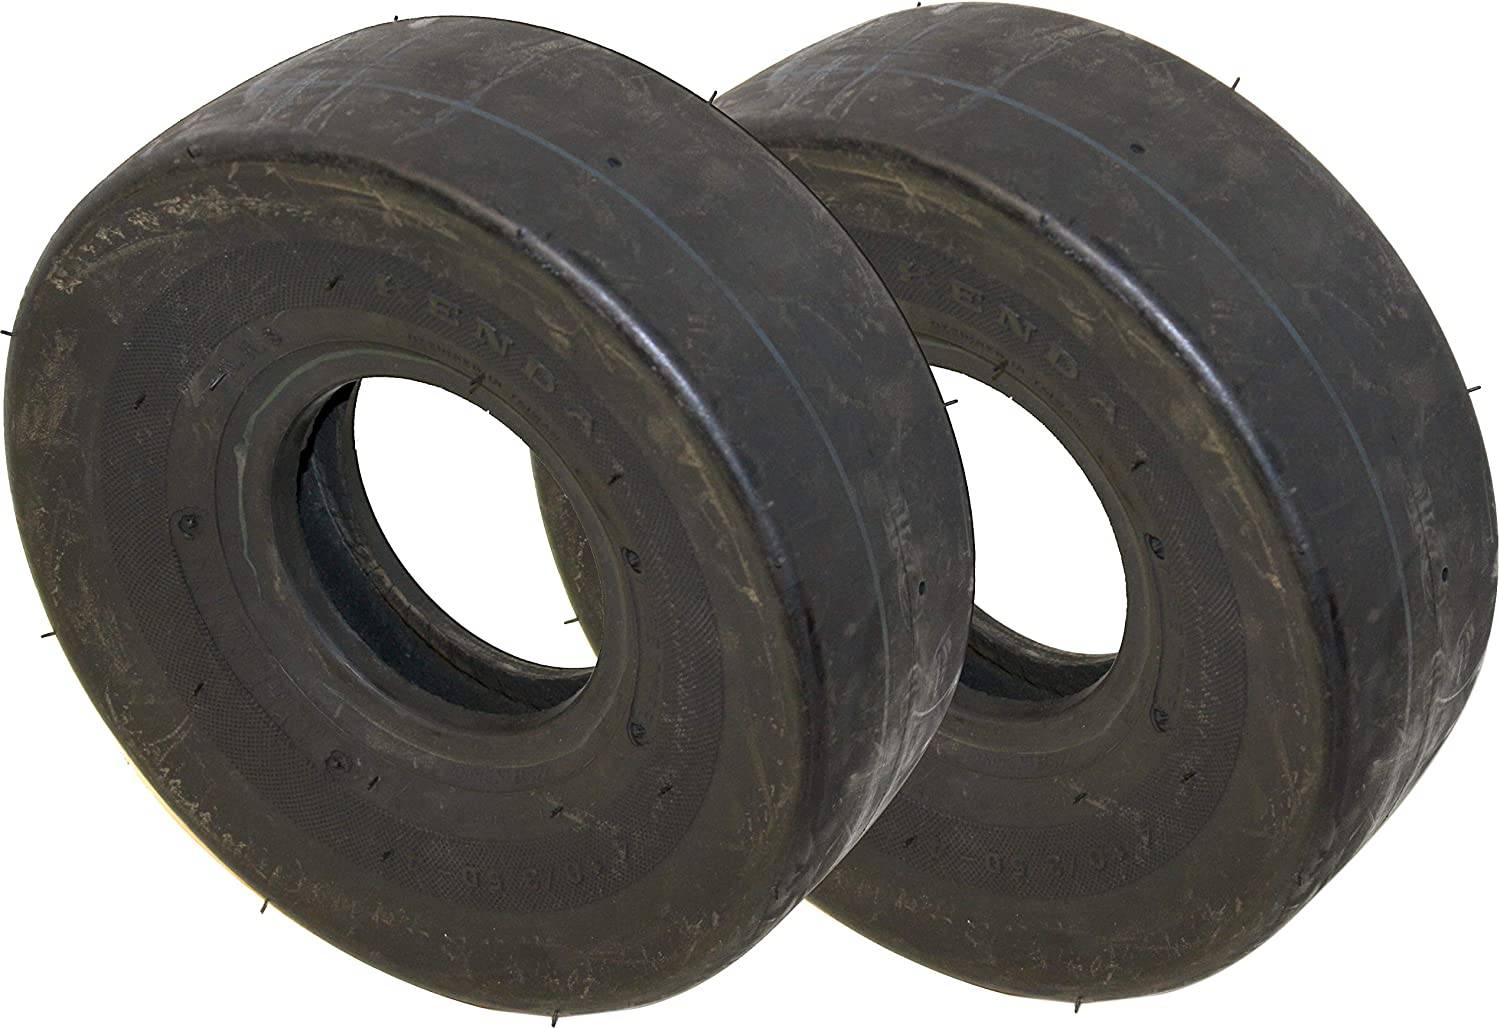 4.10/3.50-4 Kenda K404 Smooth/Slick Tread 4 Ply, Tube Type, 50 PSI, NHS Lawn Mower/Cart Tire (2)